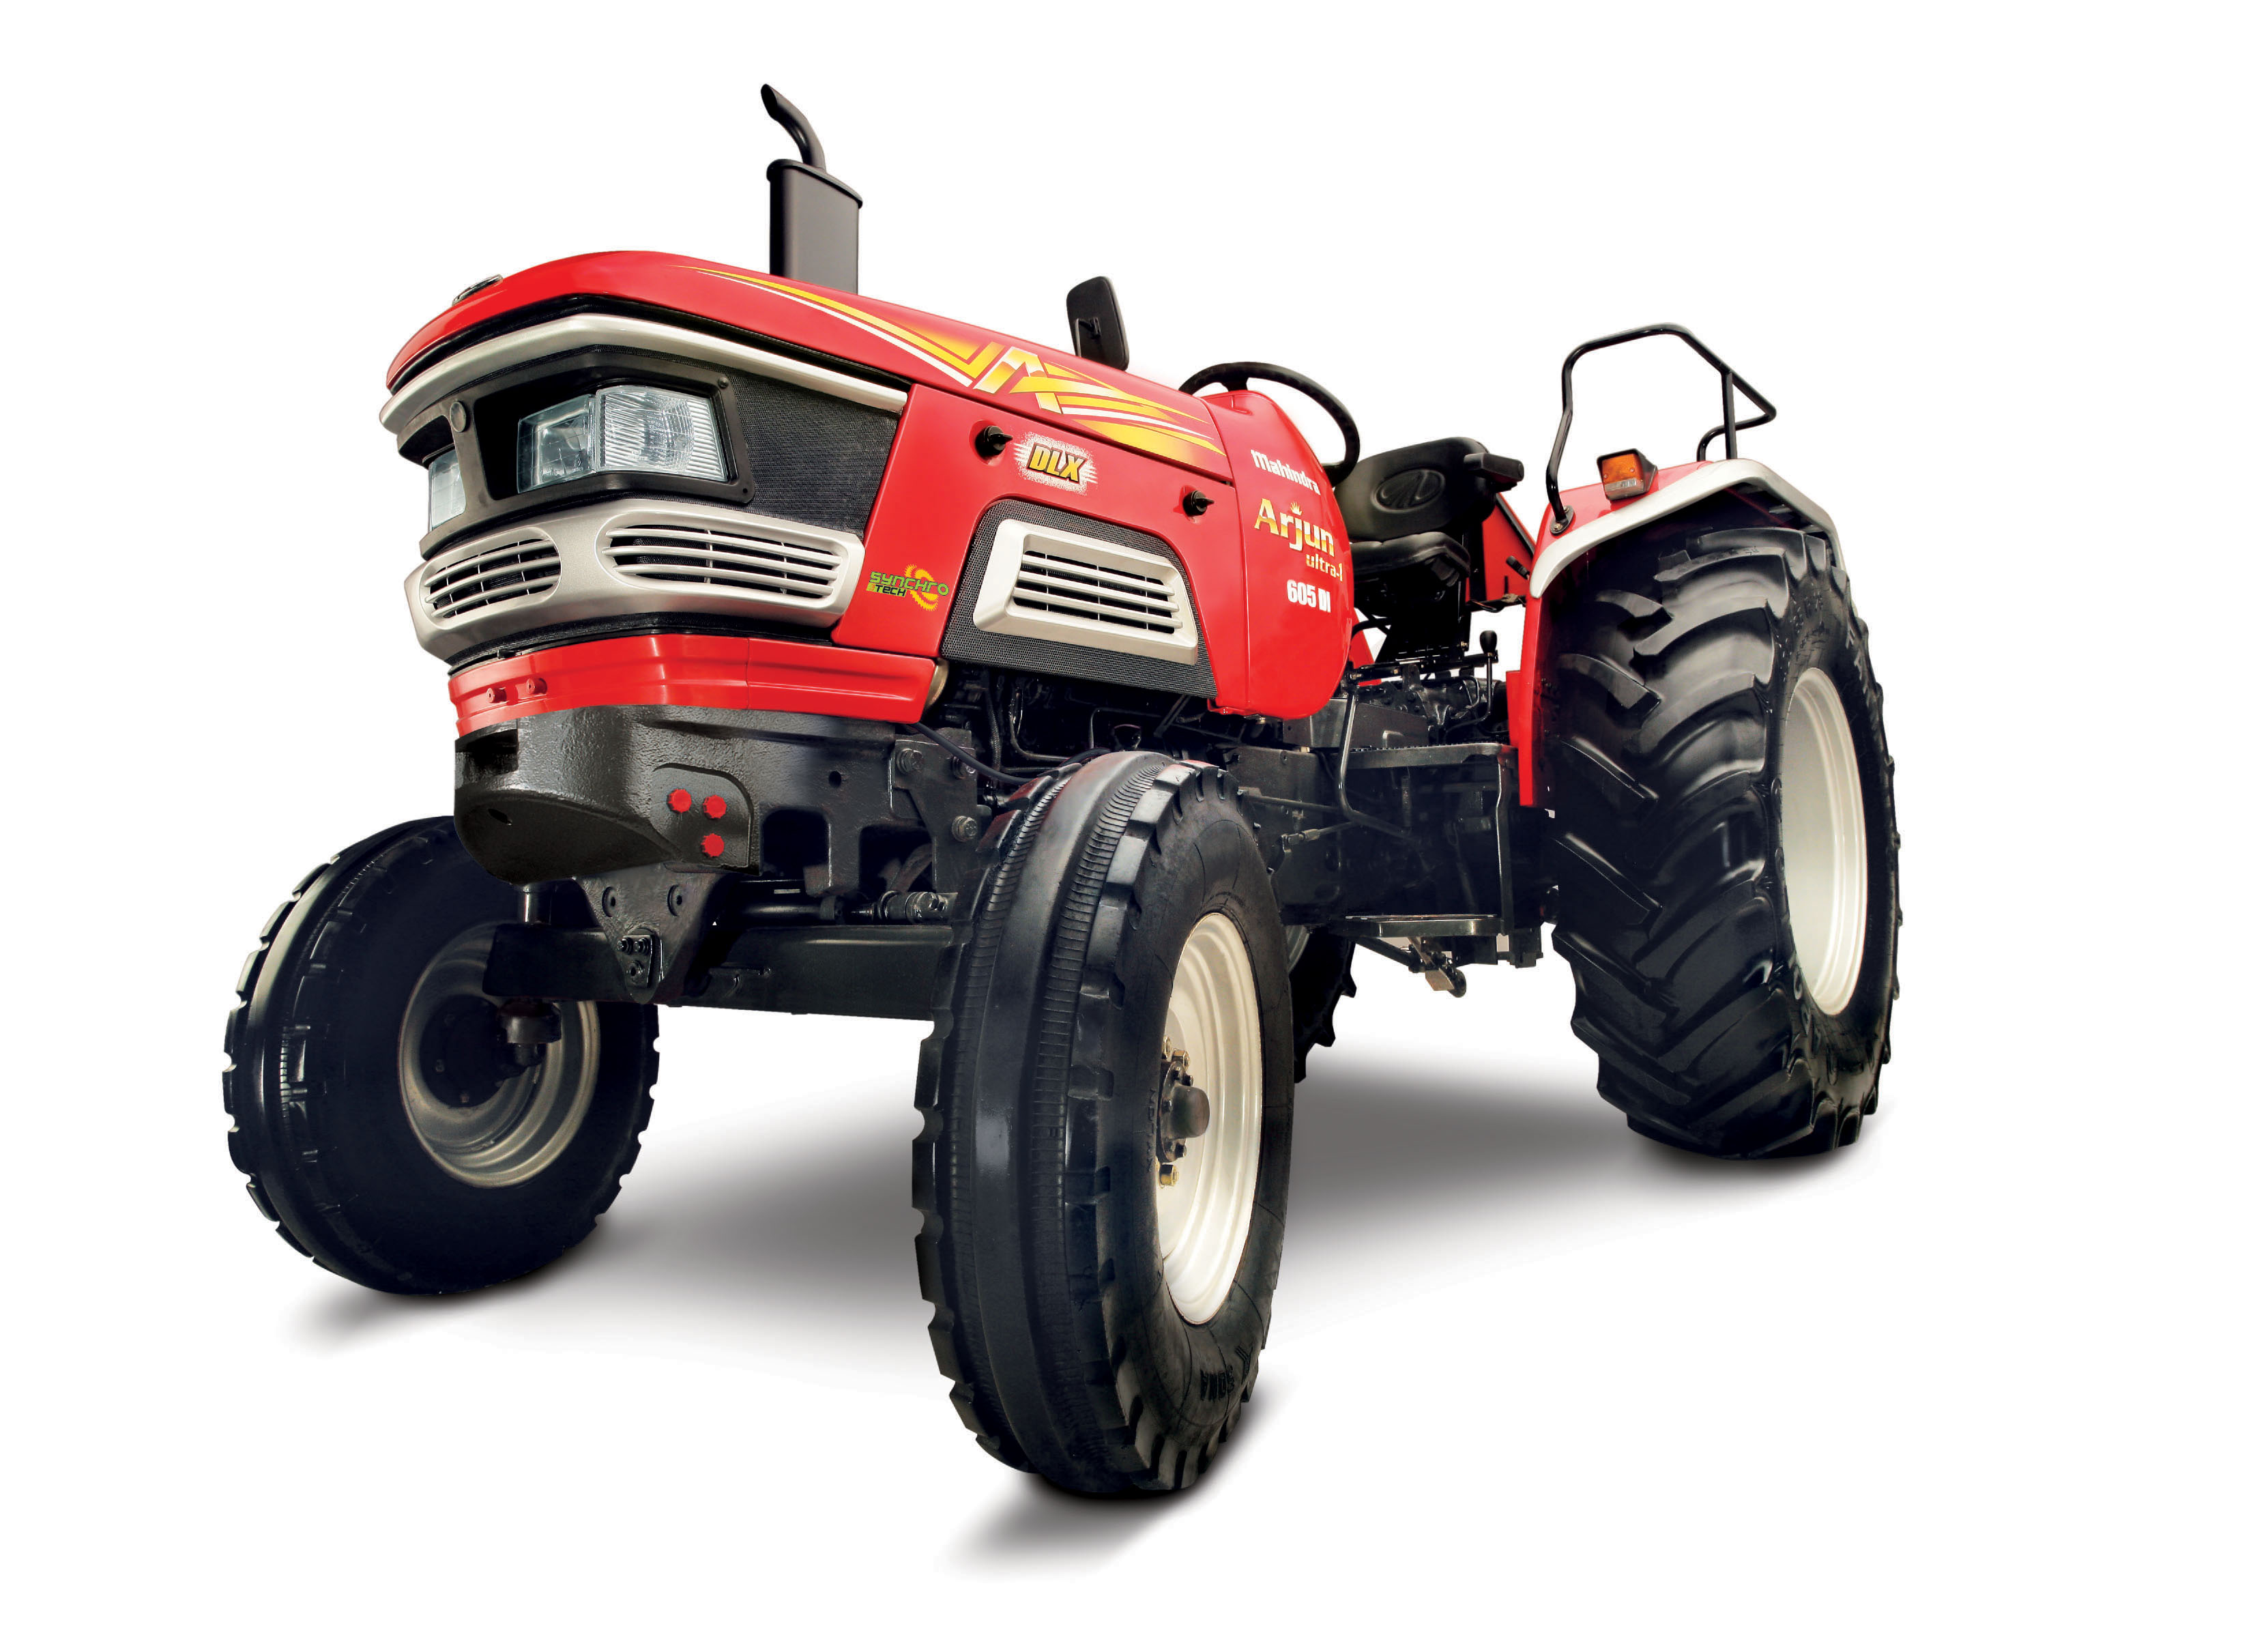 astonishing mahindra 4025 tractor wiring diagram pictures best on Kubota Tractor Parts Diagram Online Honda Wiring Diagrams for appealing mahindra 4540 wiring diagrams contemporary best image